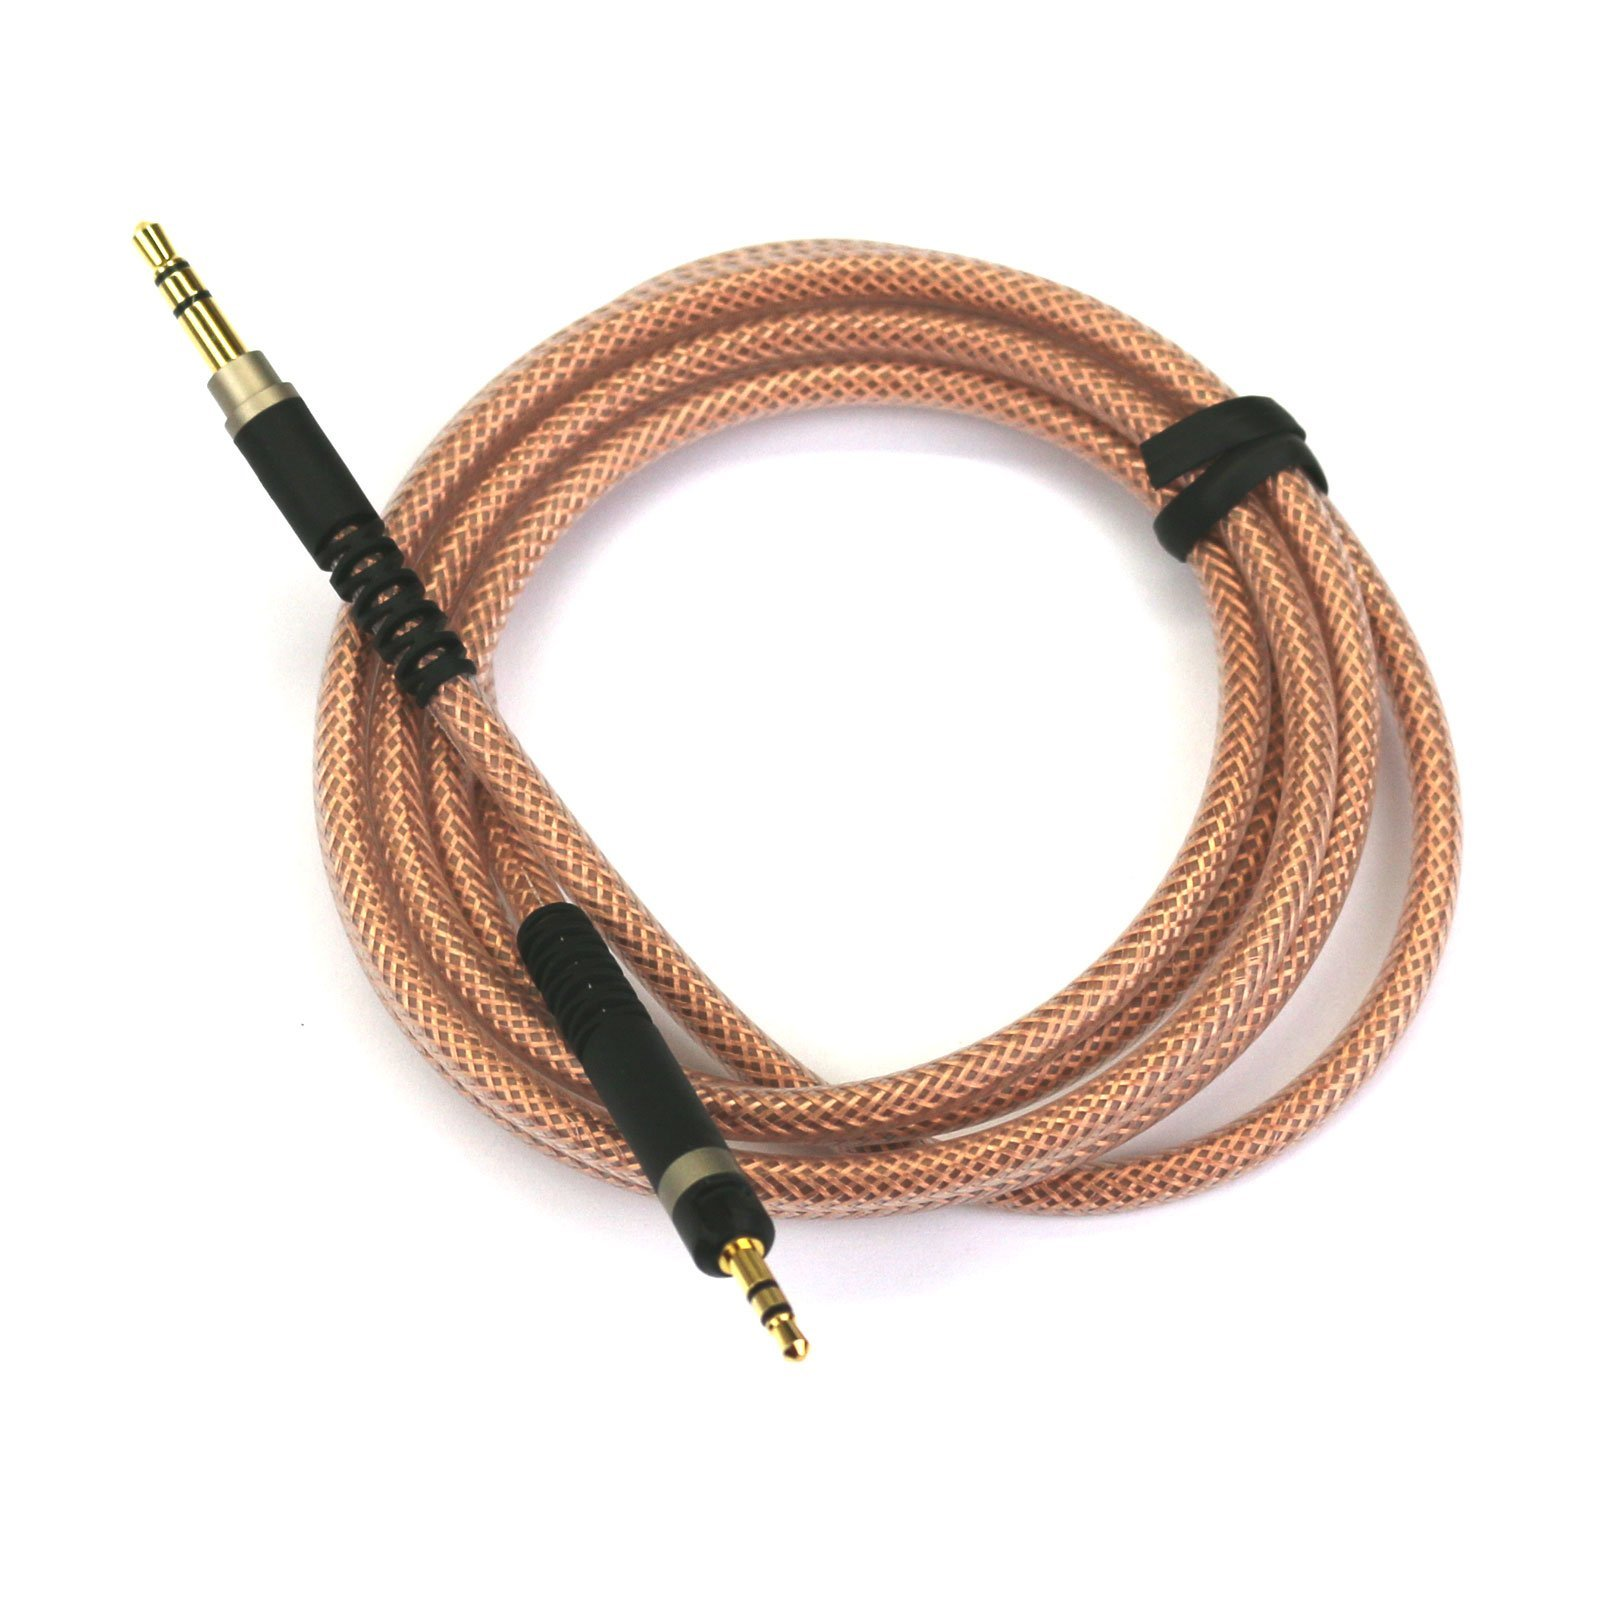 HD599 HD598 Cs HD569 HD598 SR Replacement Audio Upgrade Cable Compatible with Sennheiser HD598 HD579 Headphones 2meters//6.6feet HD518 HD558